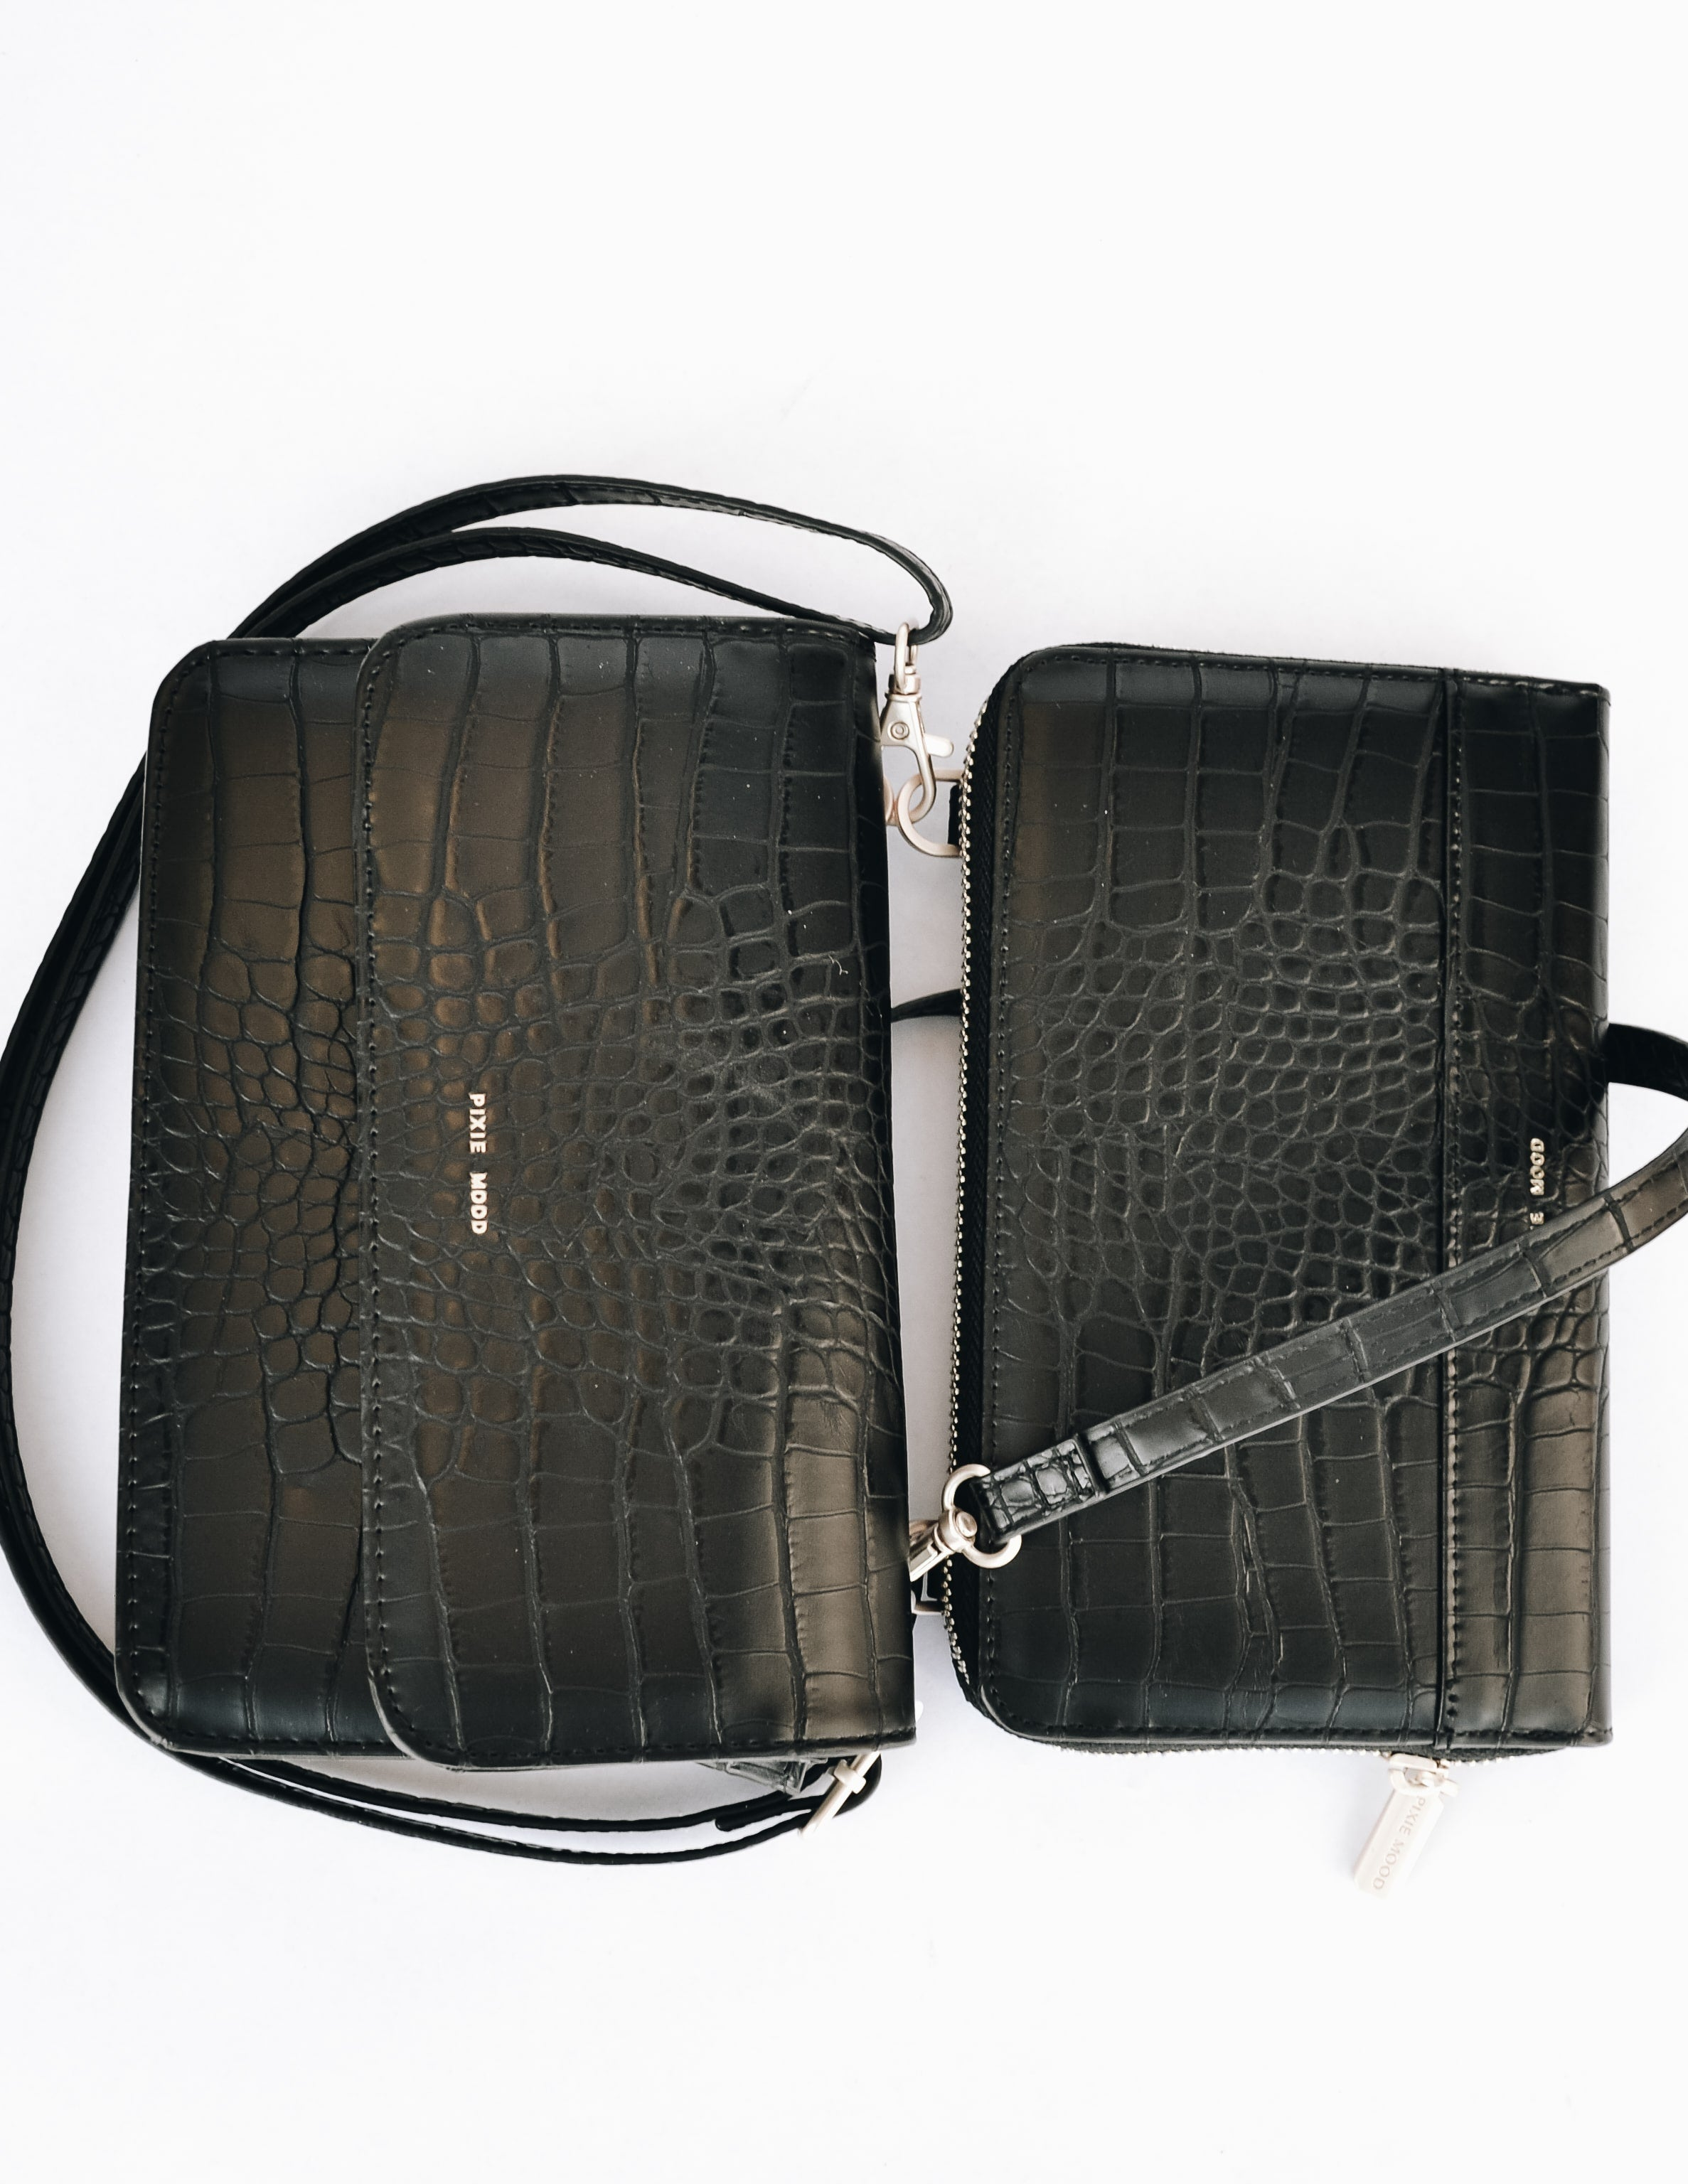 Jane 2-in-1 wallet connected by adjustable strap with magnets separated